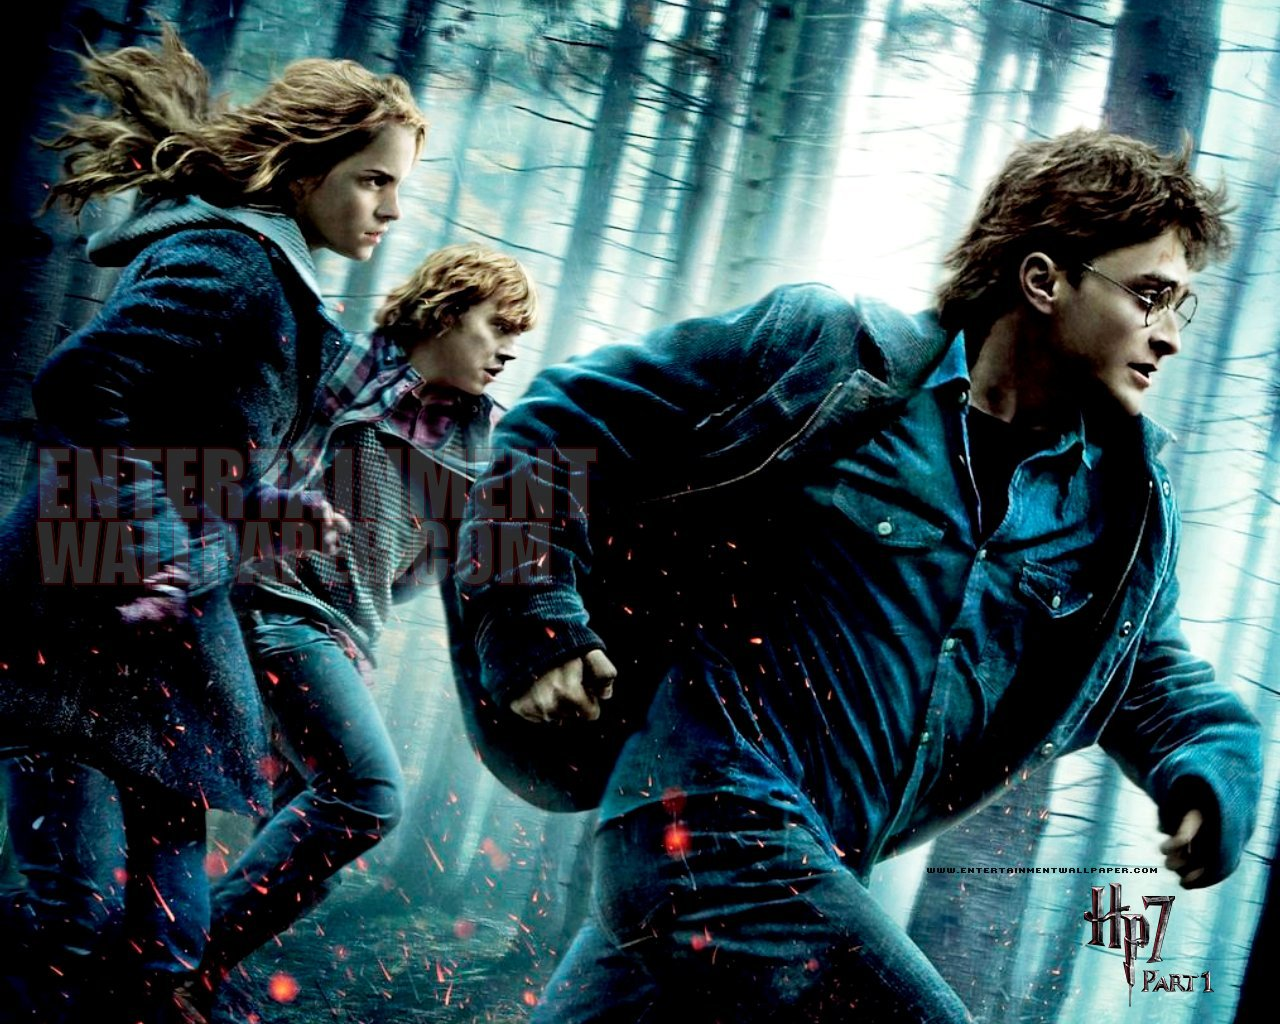 Harry Potter And The Deathly Hallows Part 1 Movie Wallpapers Src